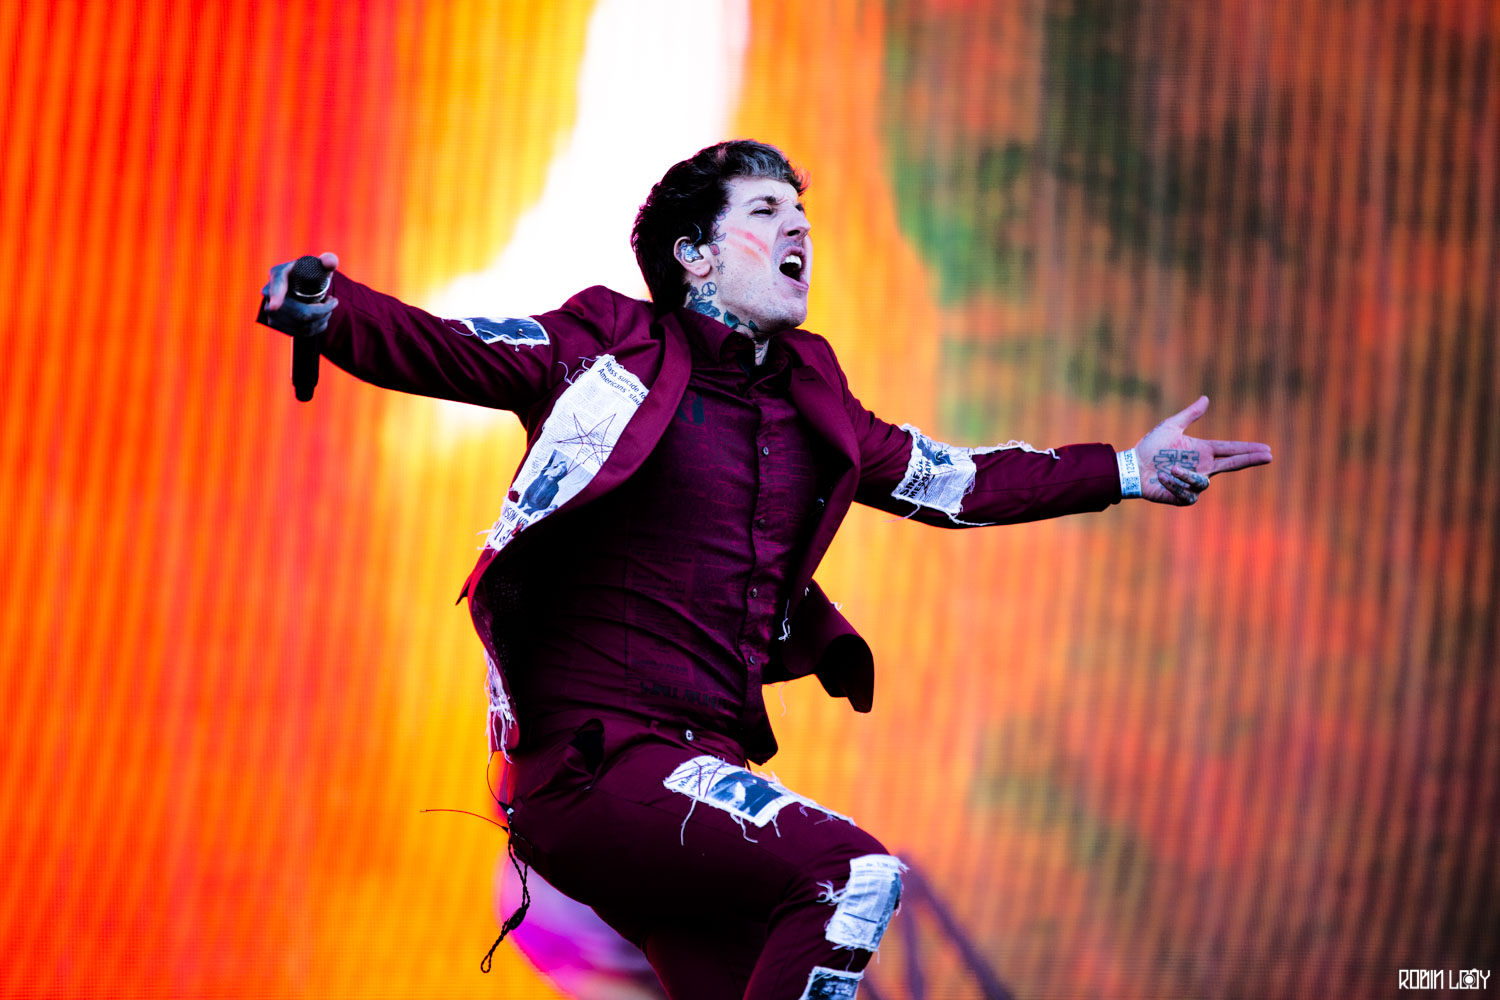 bring me the horizon live concert photo rock werchter photographer fotograaf robin looy